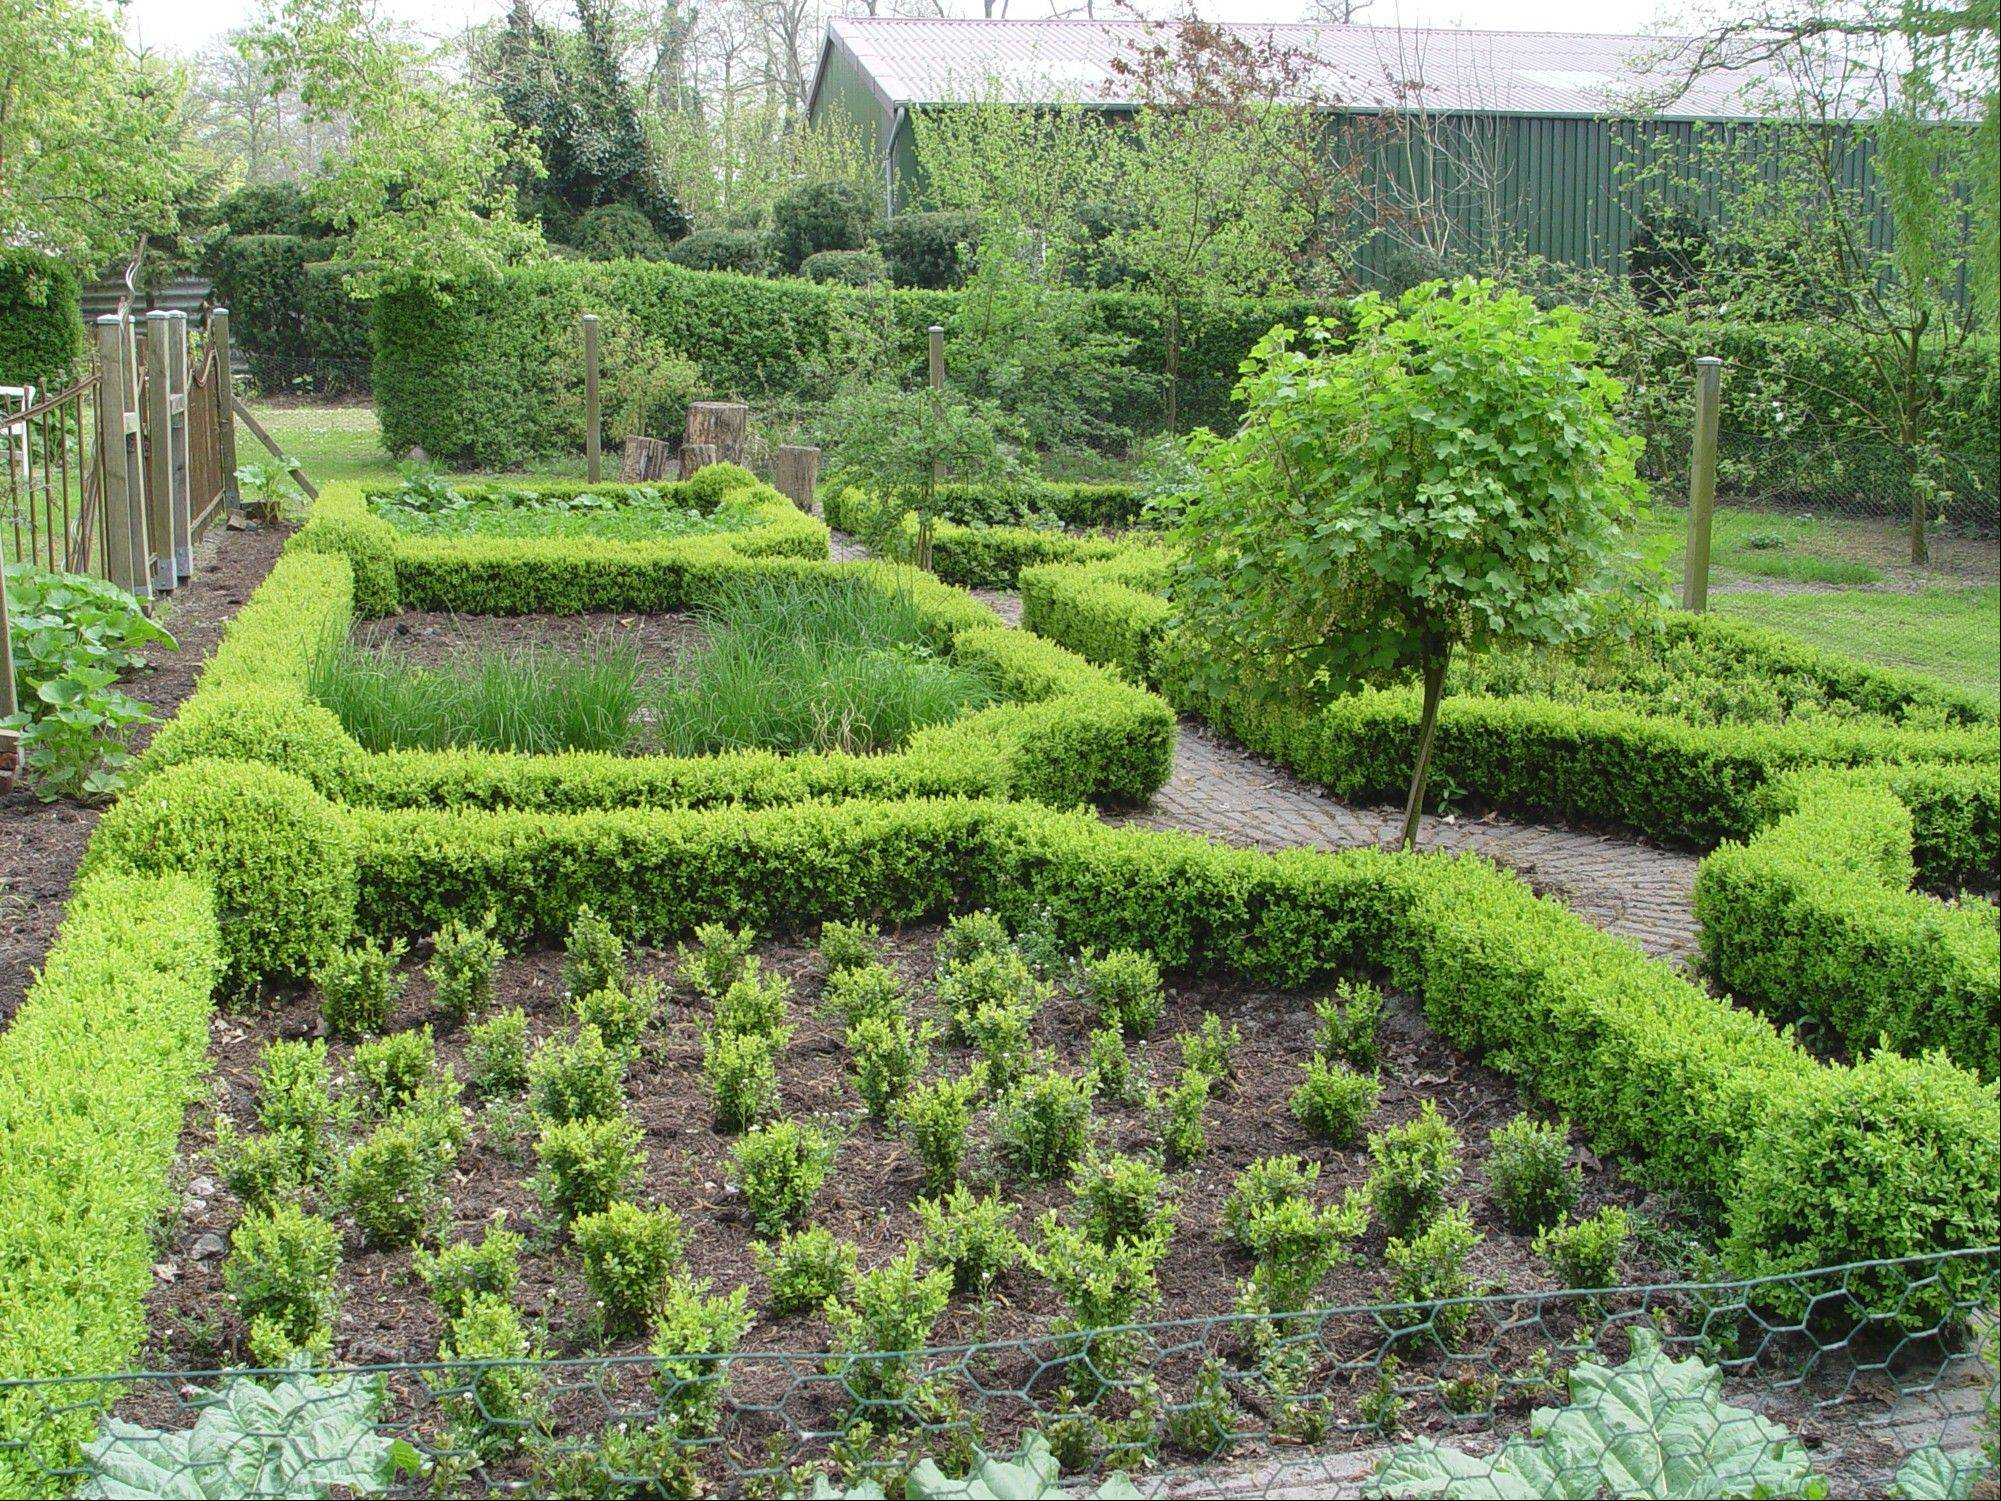 Small boxwood hedges can be used to outline more ornamental potager gardens.